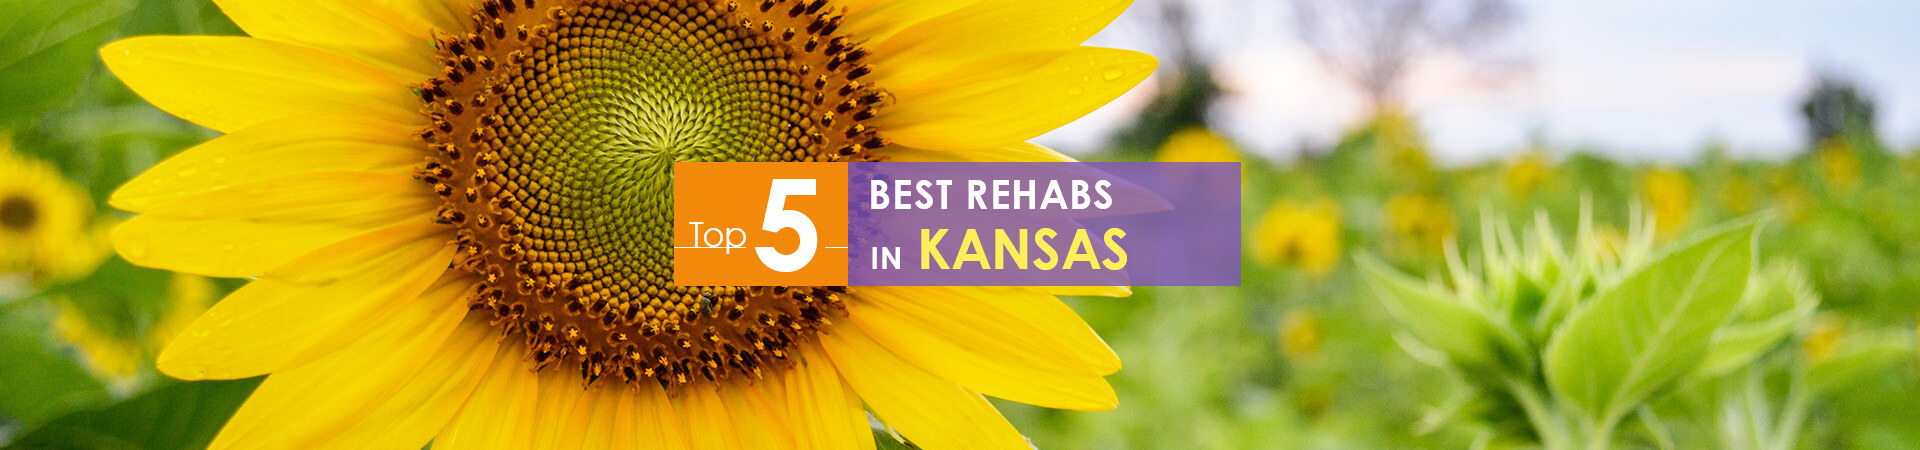 sunflower background and top 5 rehabs in Kansas caption